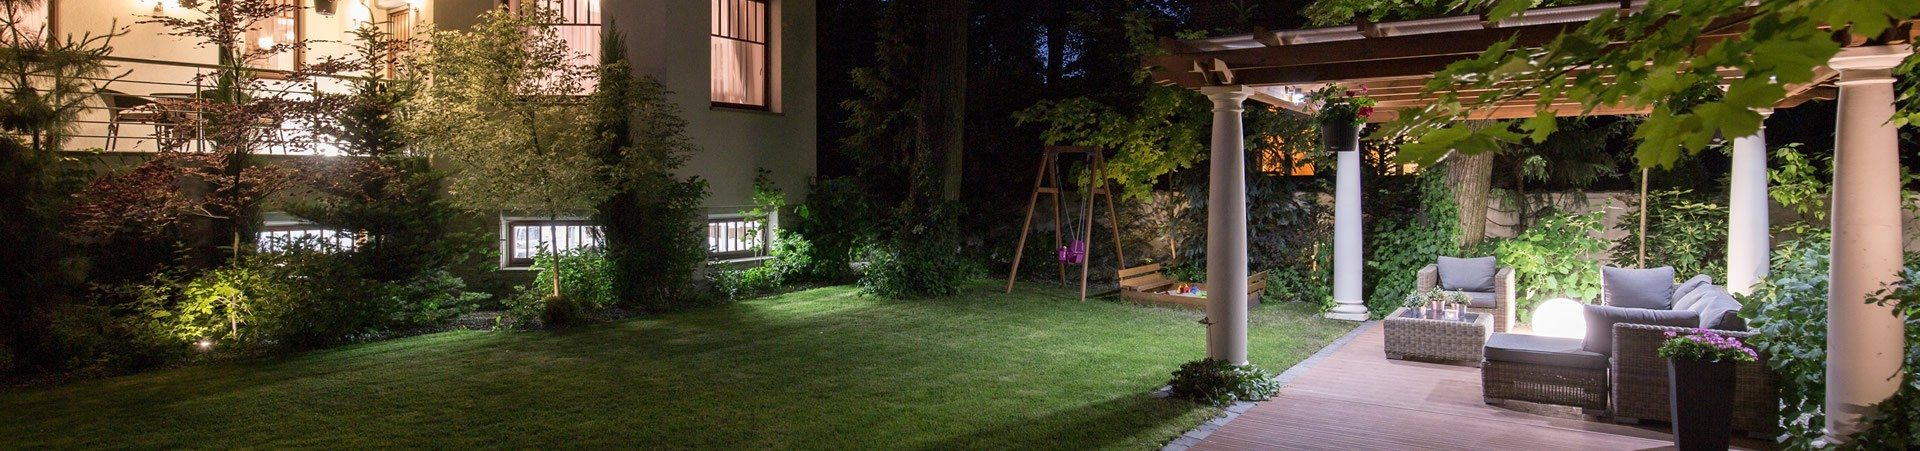 Landscape Lighting in Backyard